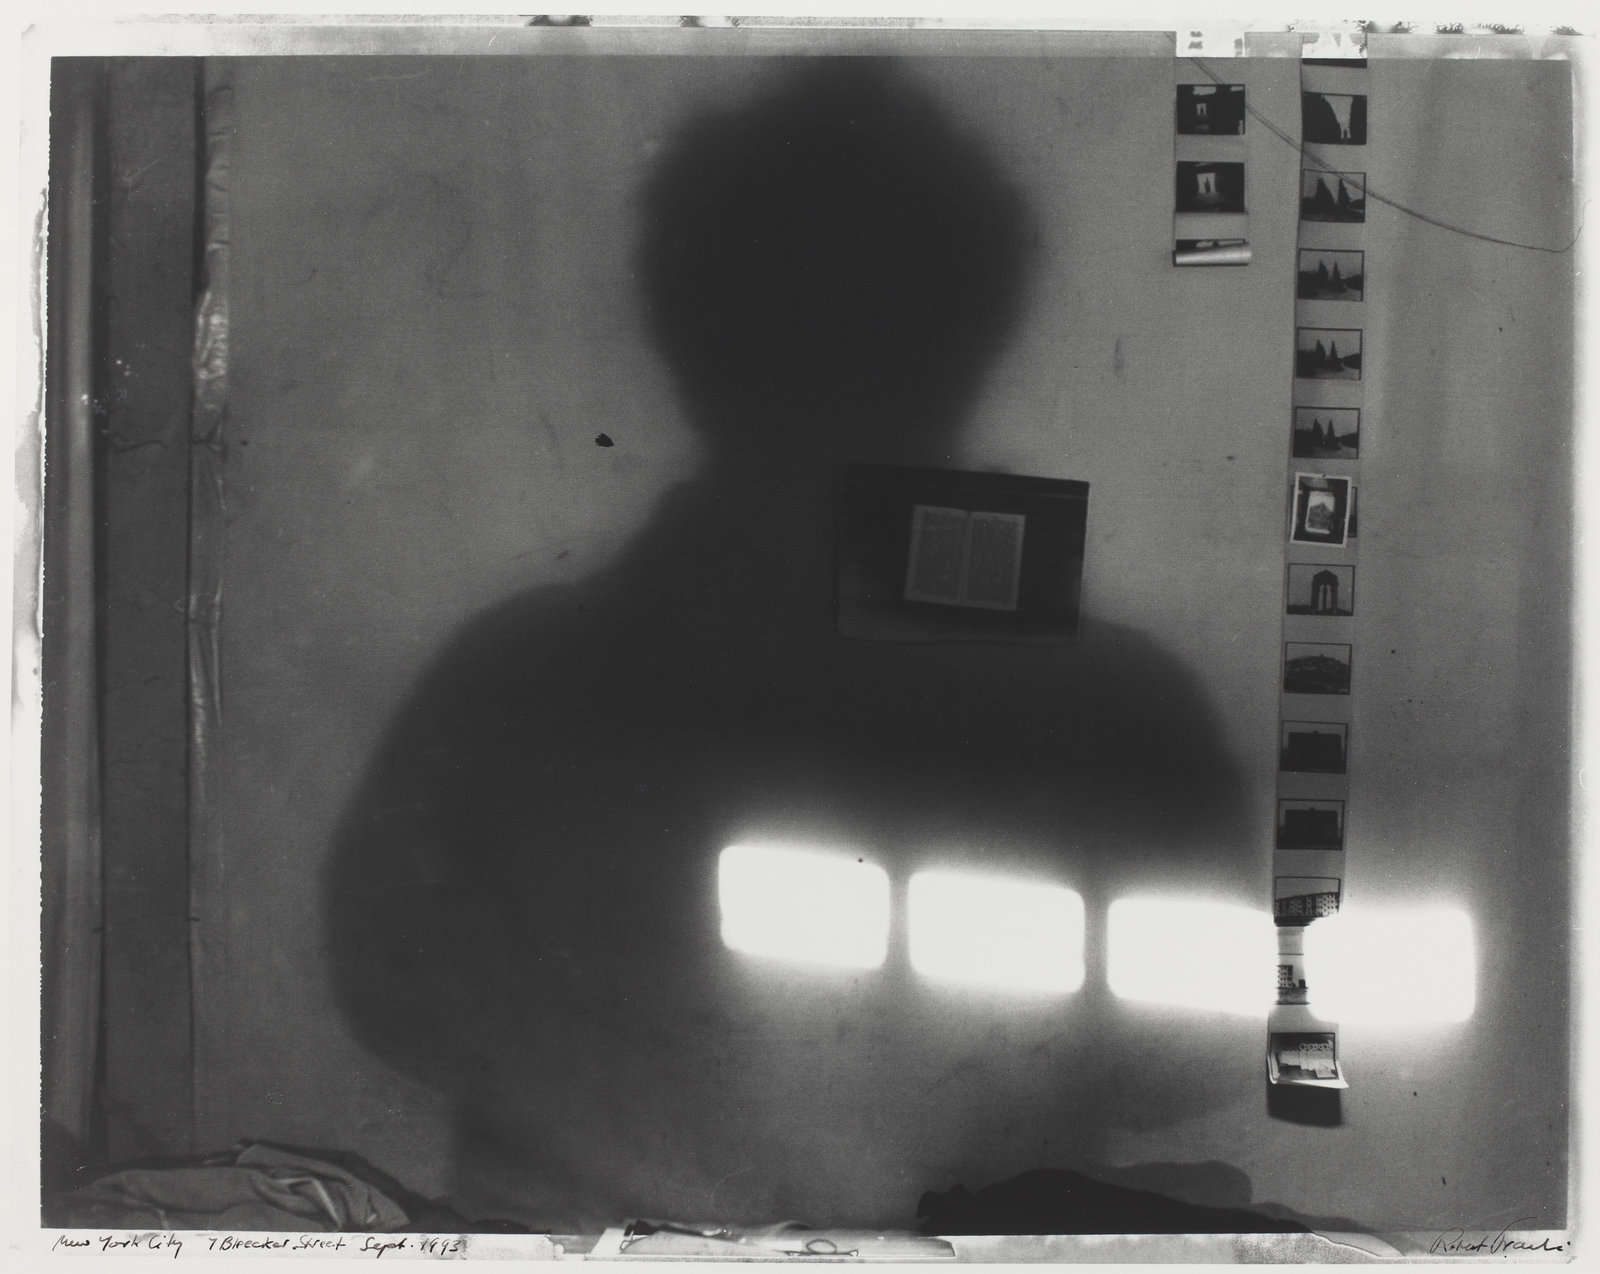 Uneasy Words While Waiting: An Interview with Robert Frank